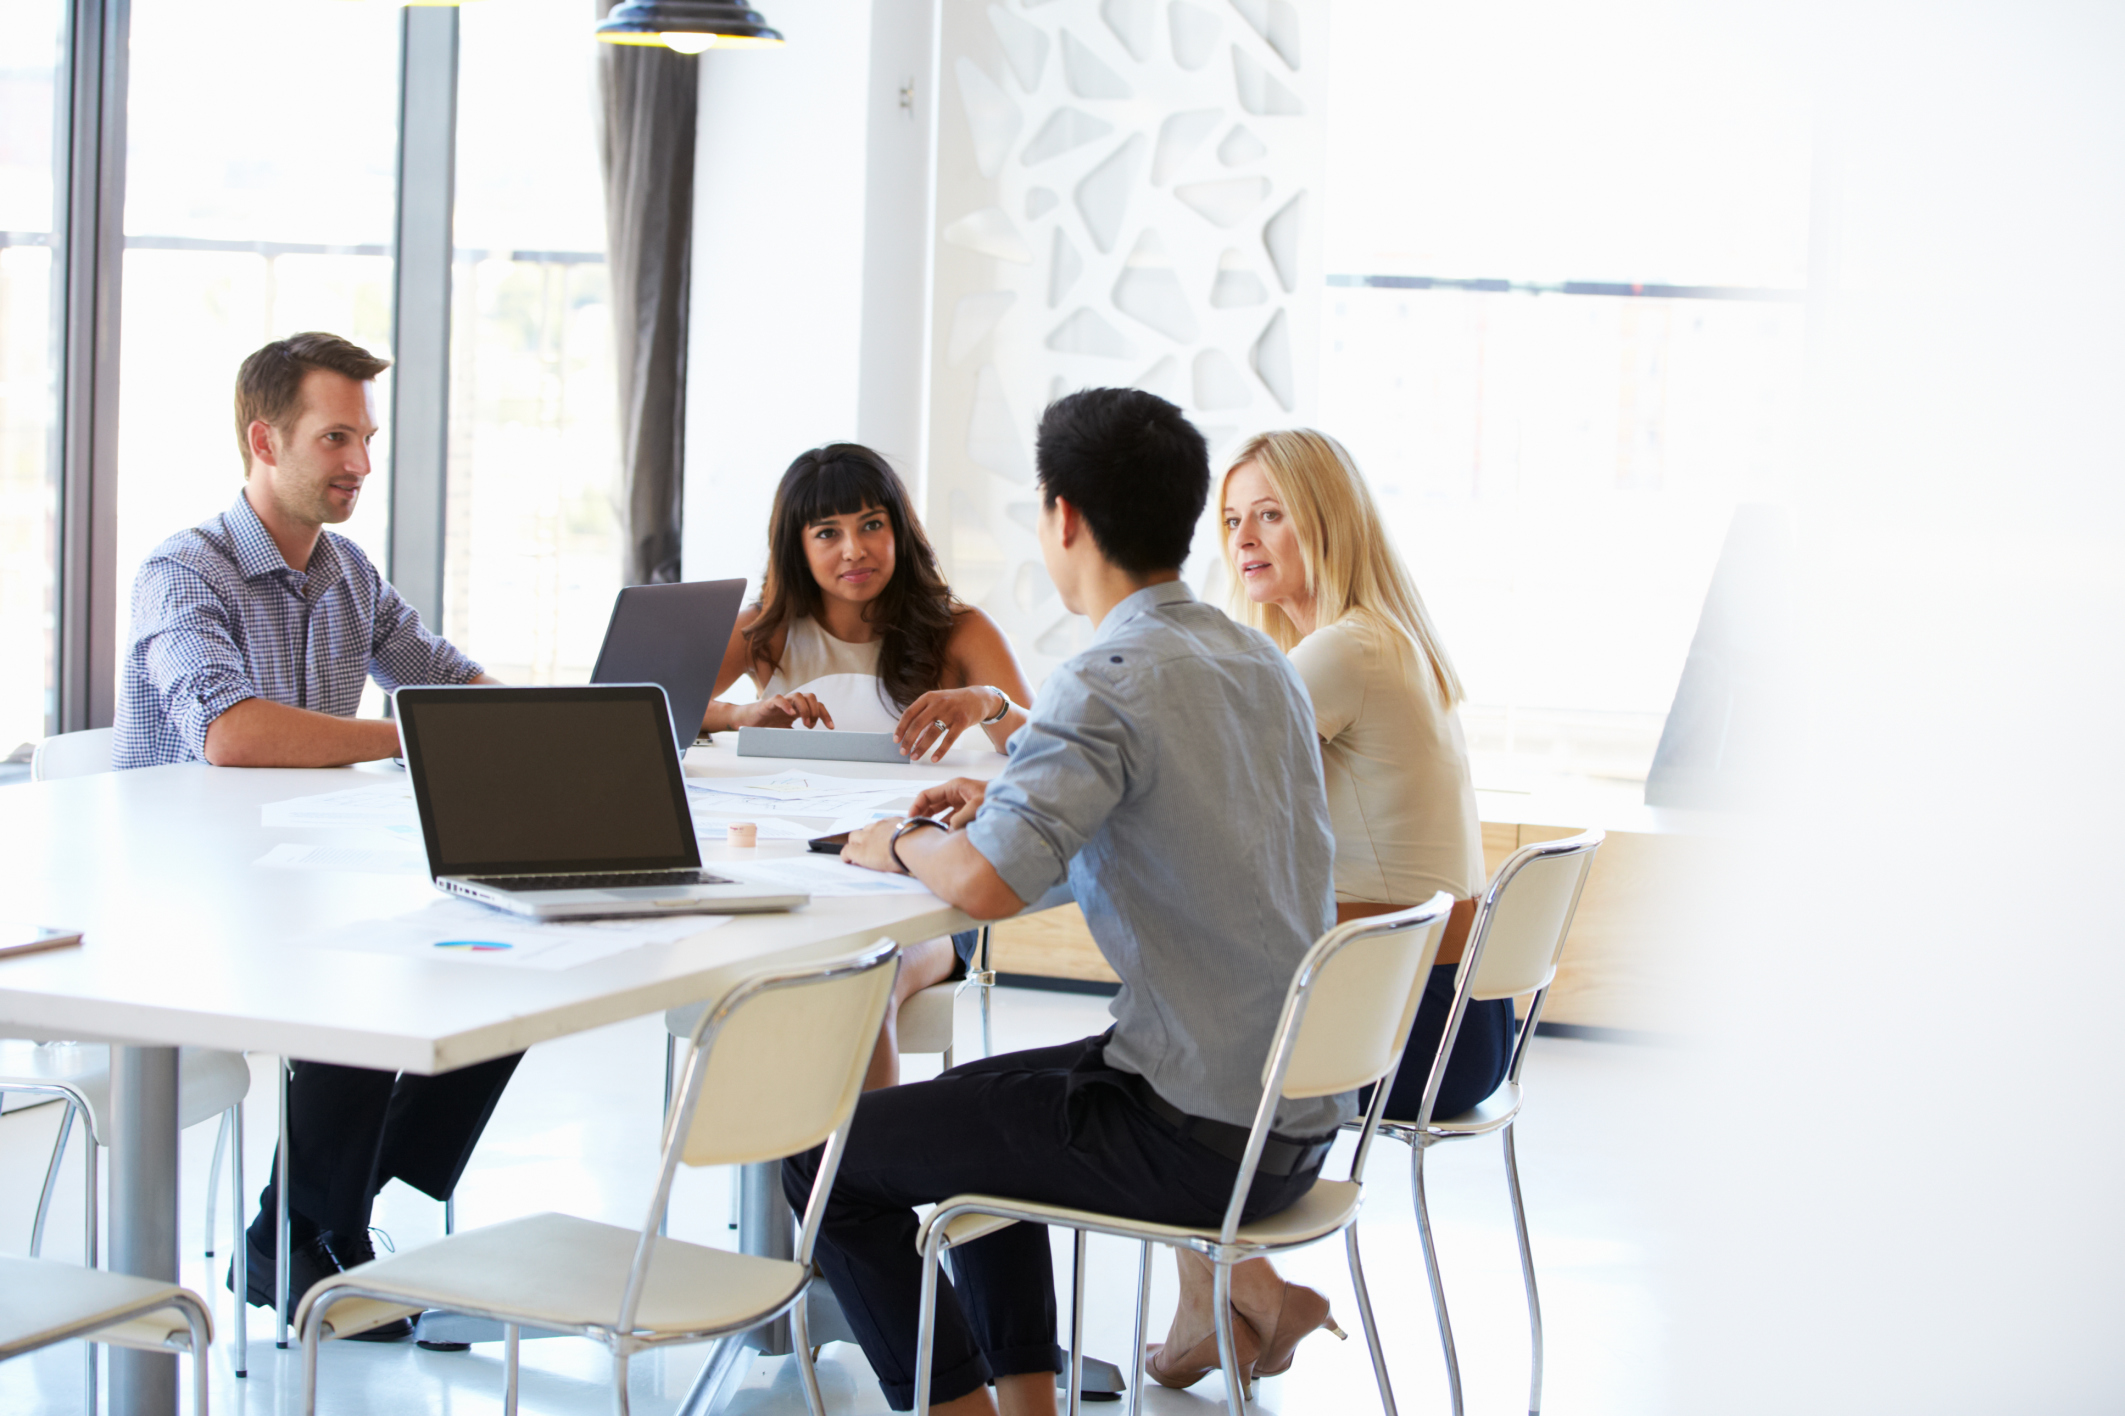 Novel Ways to Help Employees Understand the Need for Change